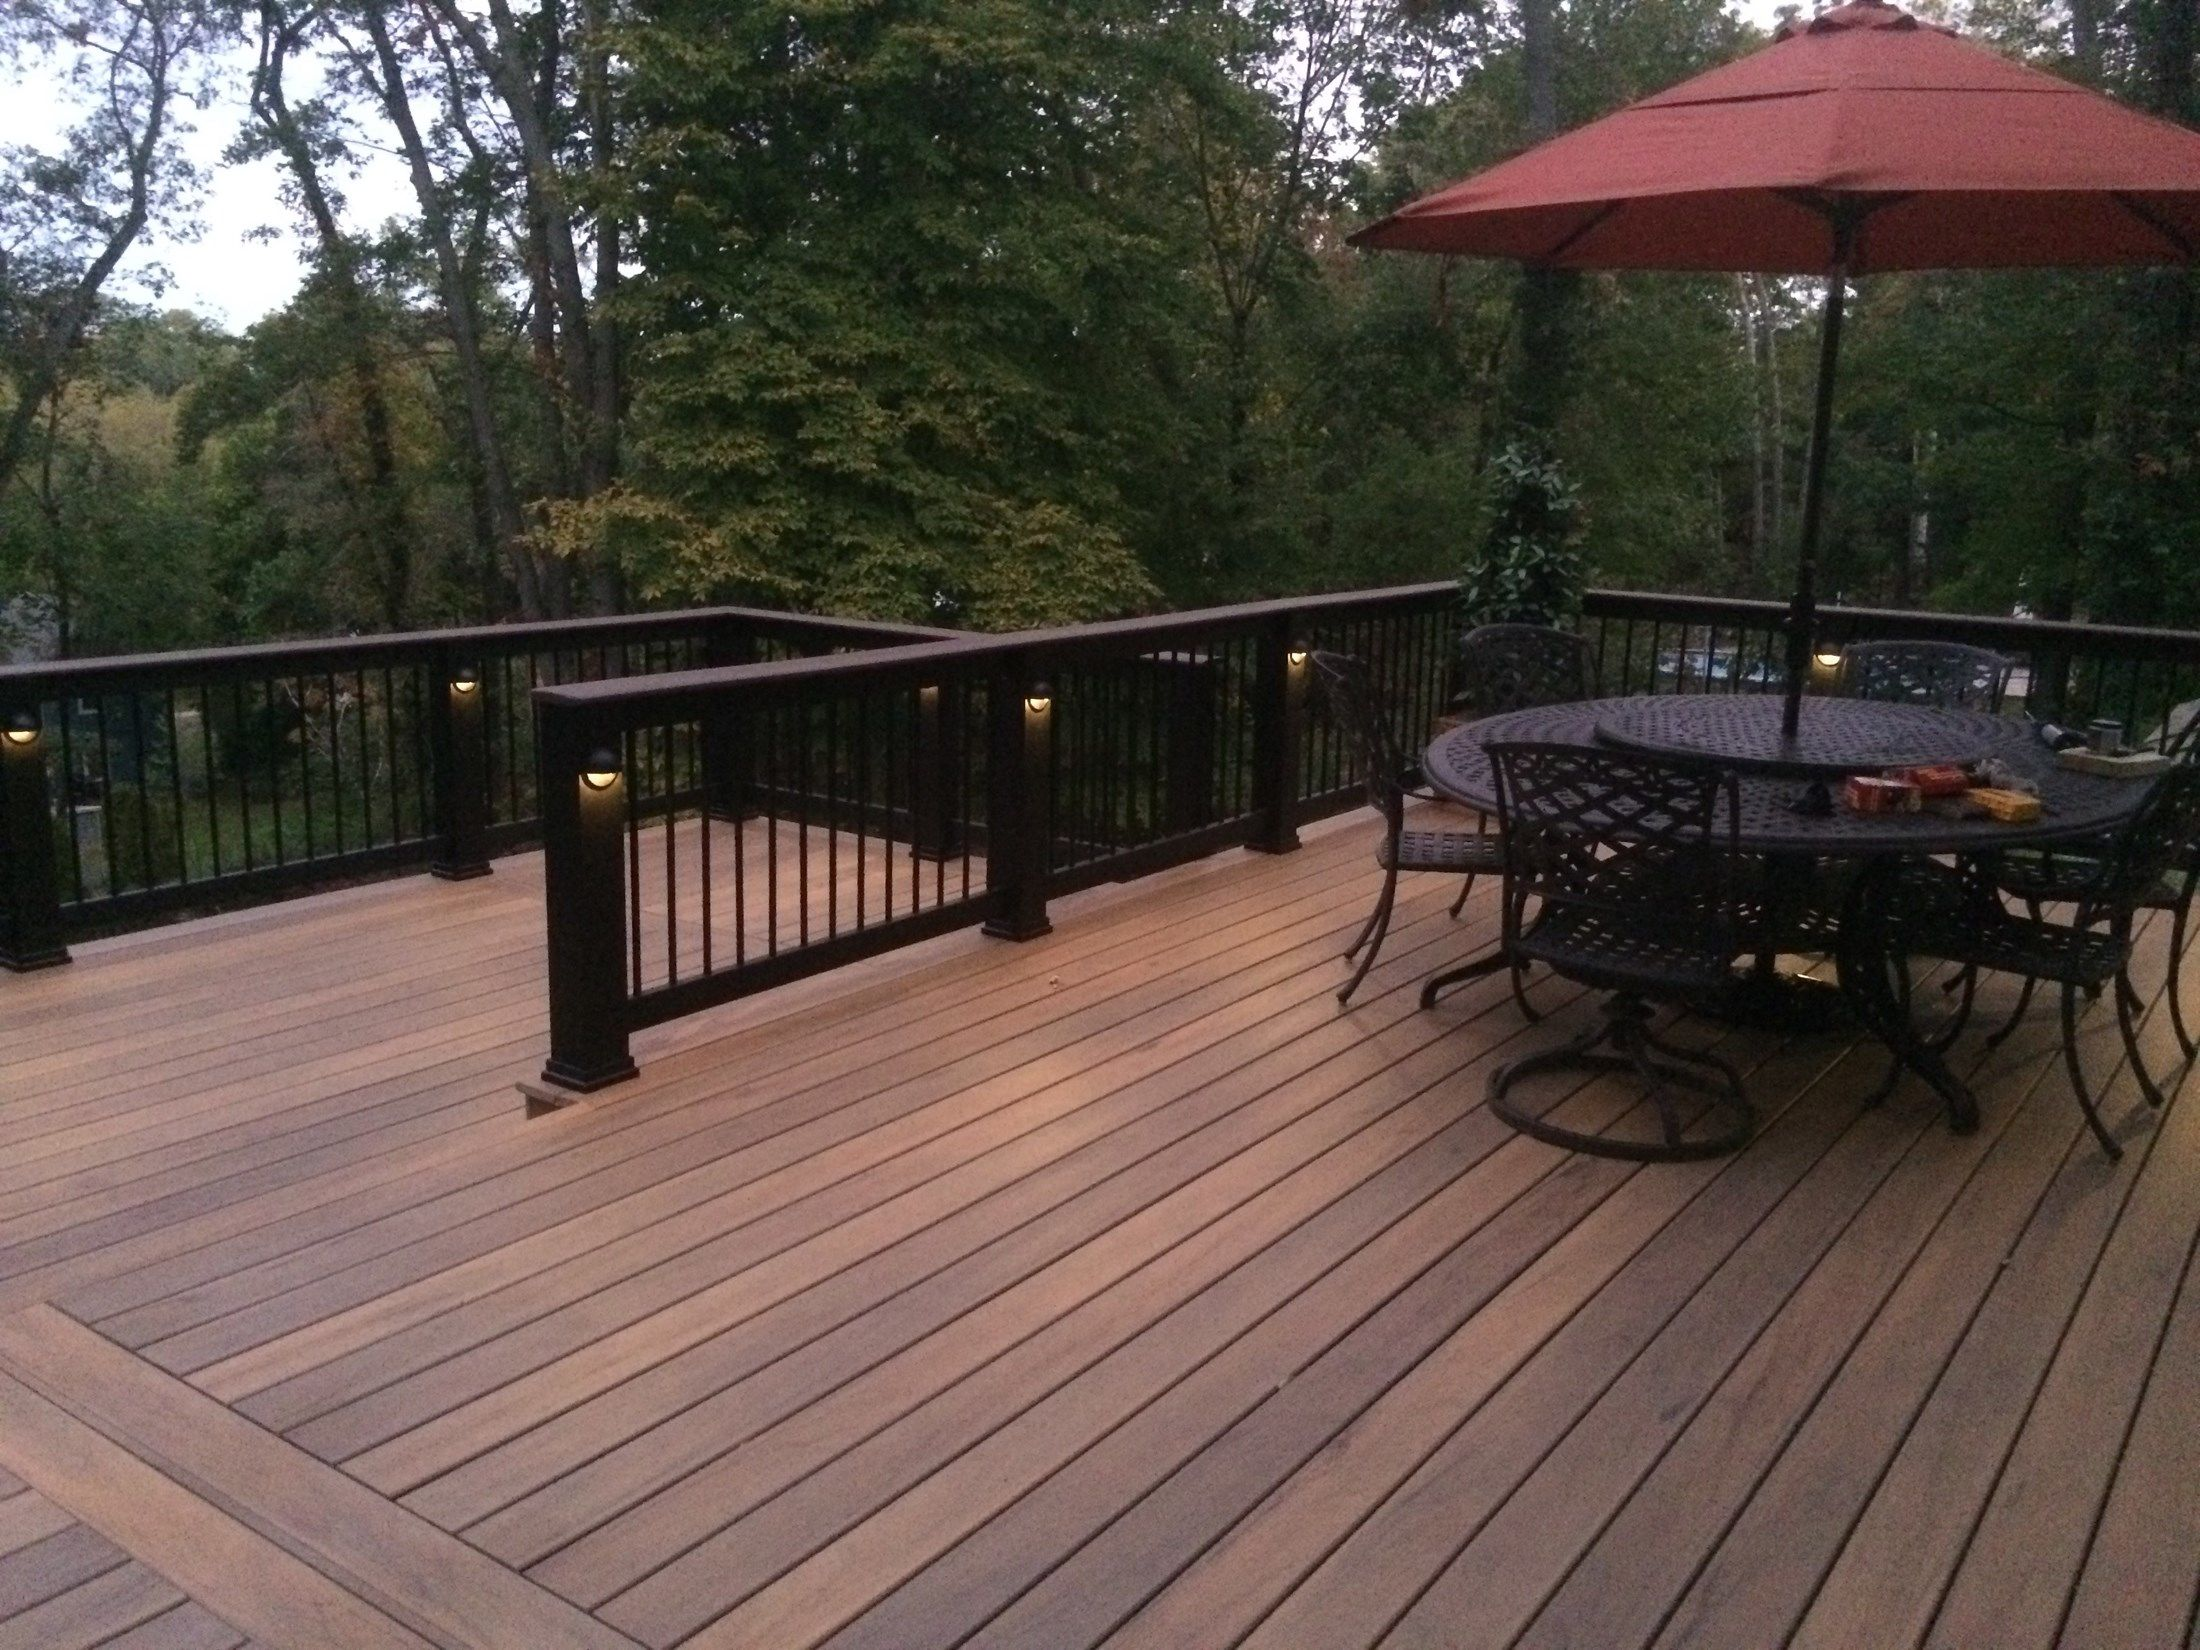 East Setauket Two Level Deck - Picture 3179